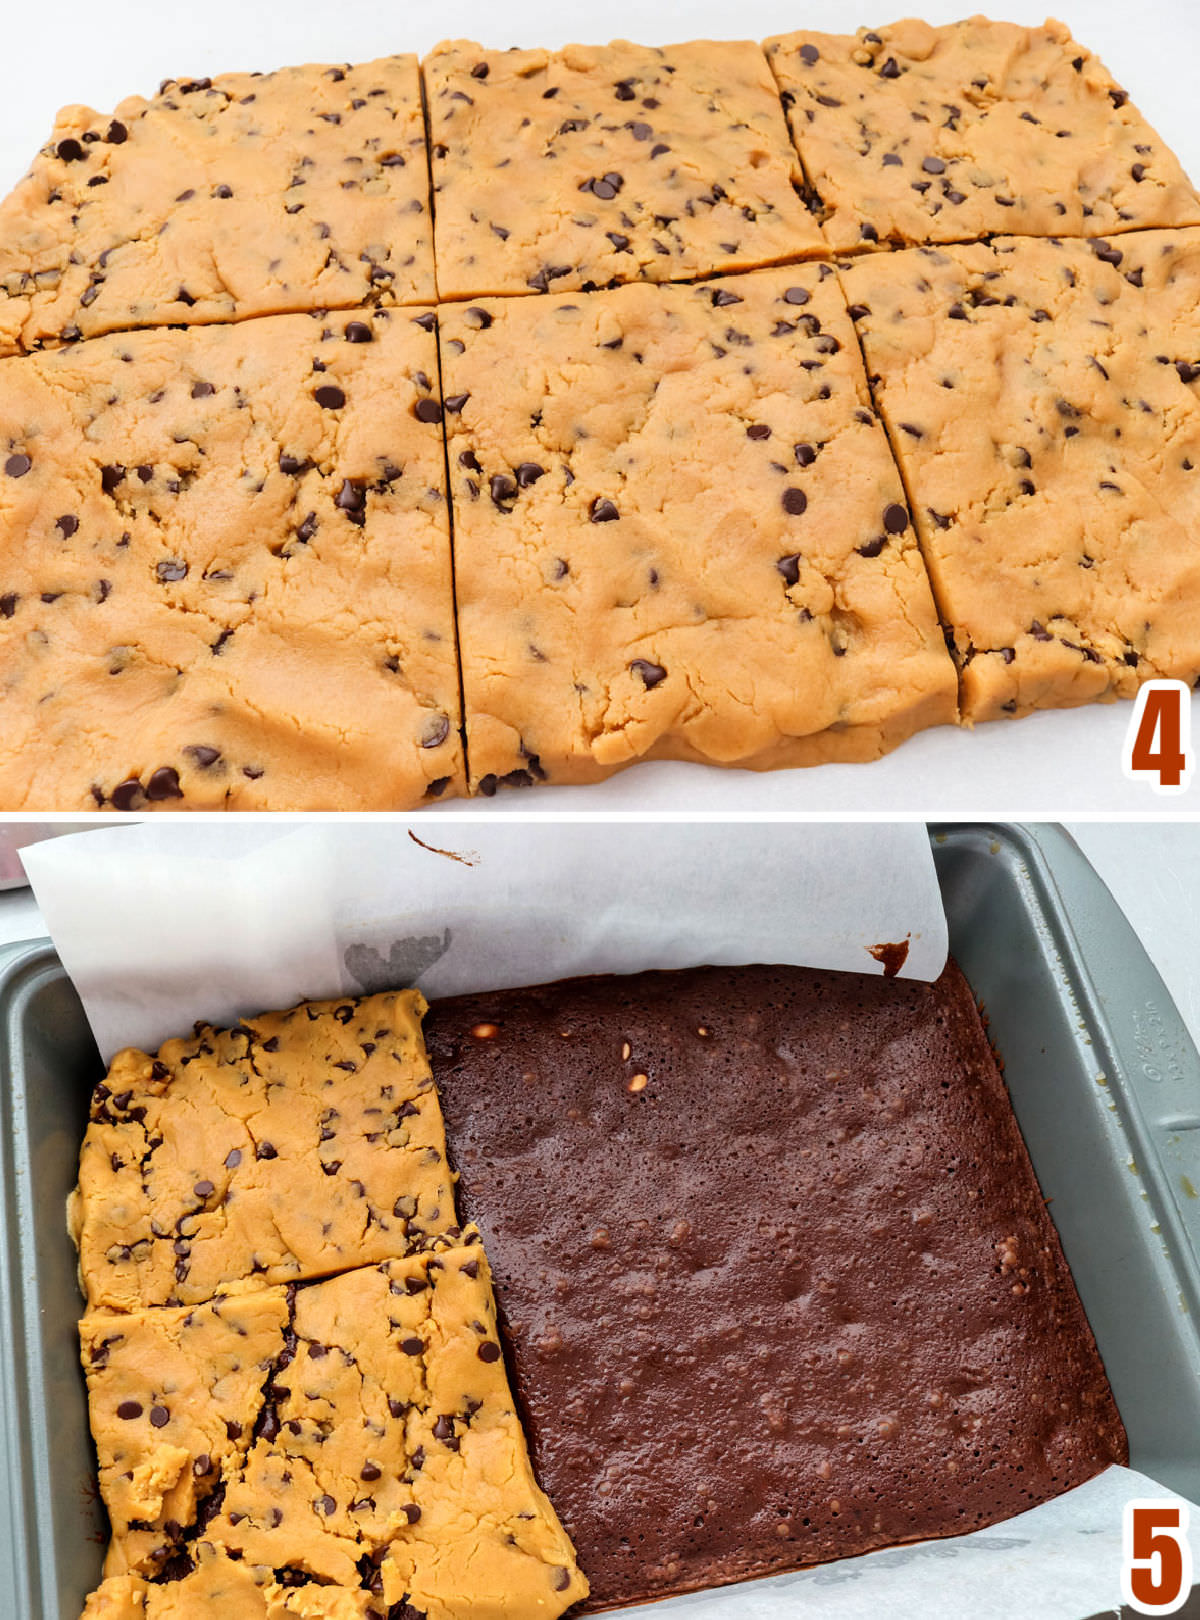 Collage image showing how to add the Peanut Butter Cookie dough to the partially cooked pan of brownies.